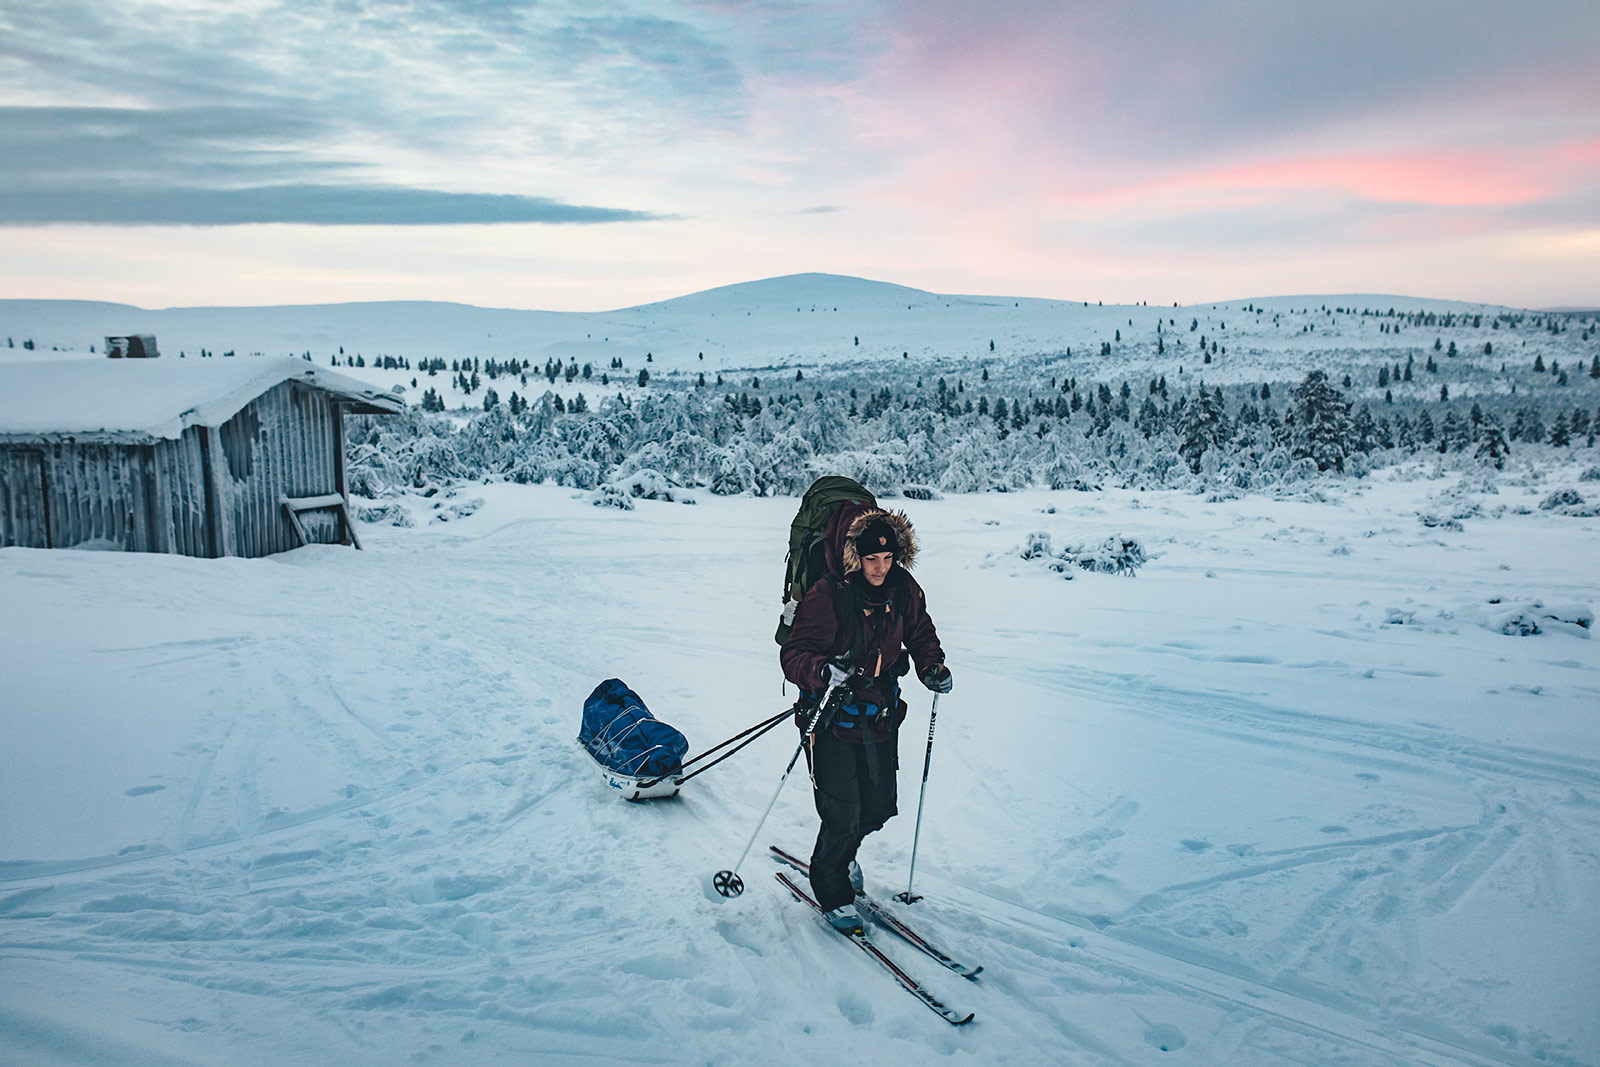 Lapland, skiing [Photo: Daniel Ernst]